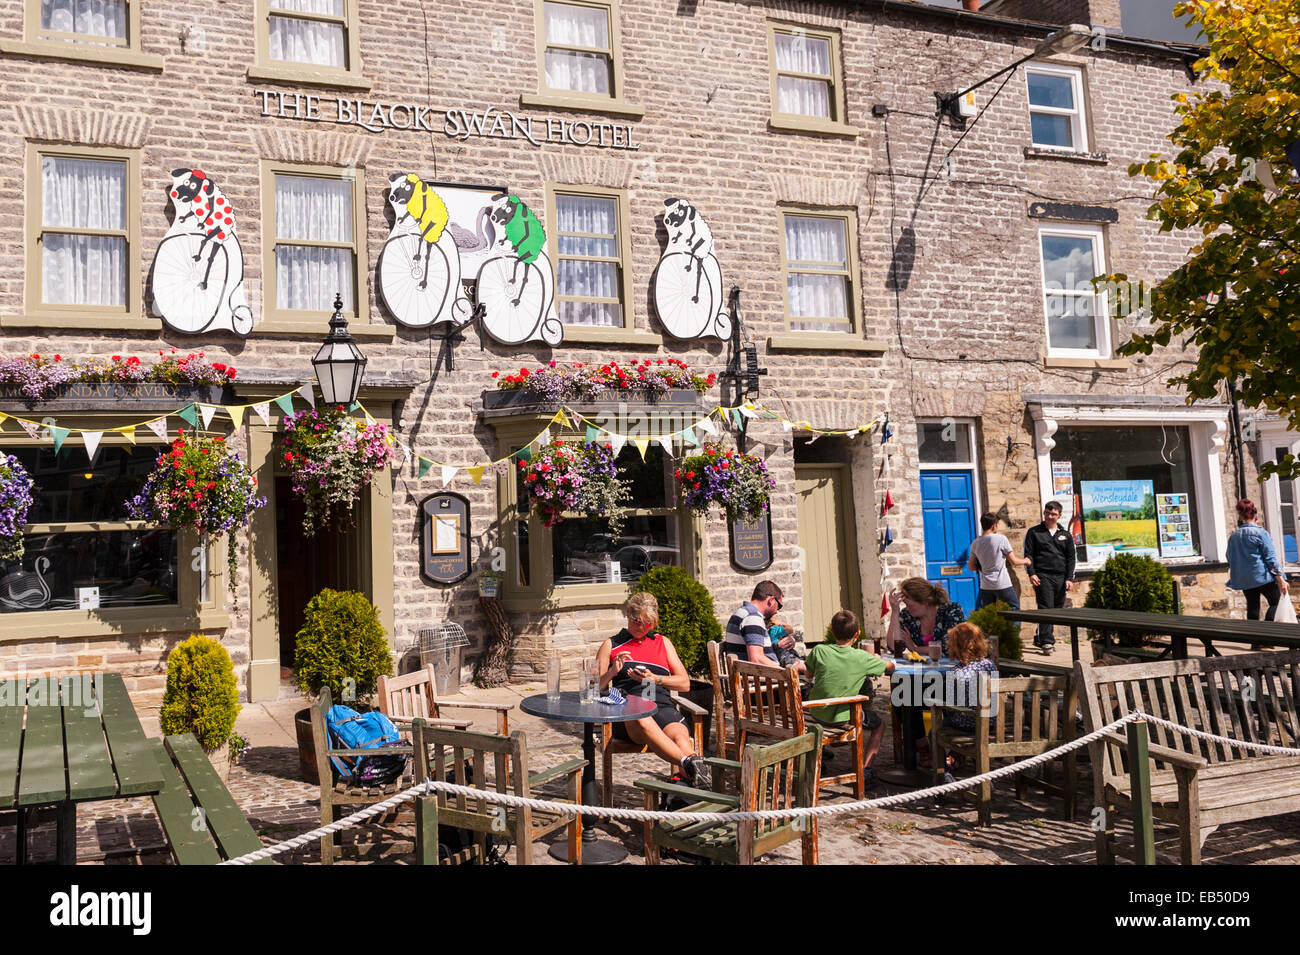 The Black Swan Hotel in Leyburn , the Yorkshire Dales  Yorkshire , England , Britain , Uk - Stock Image